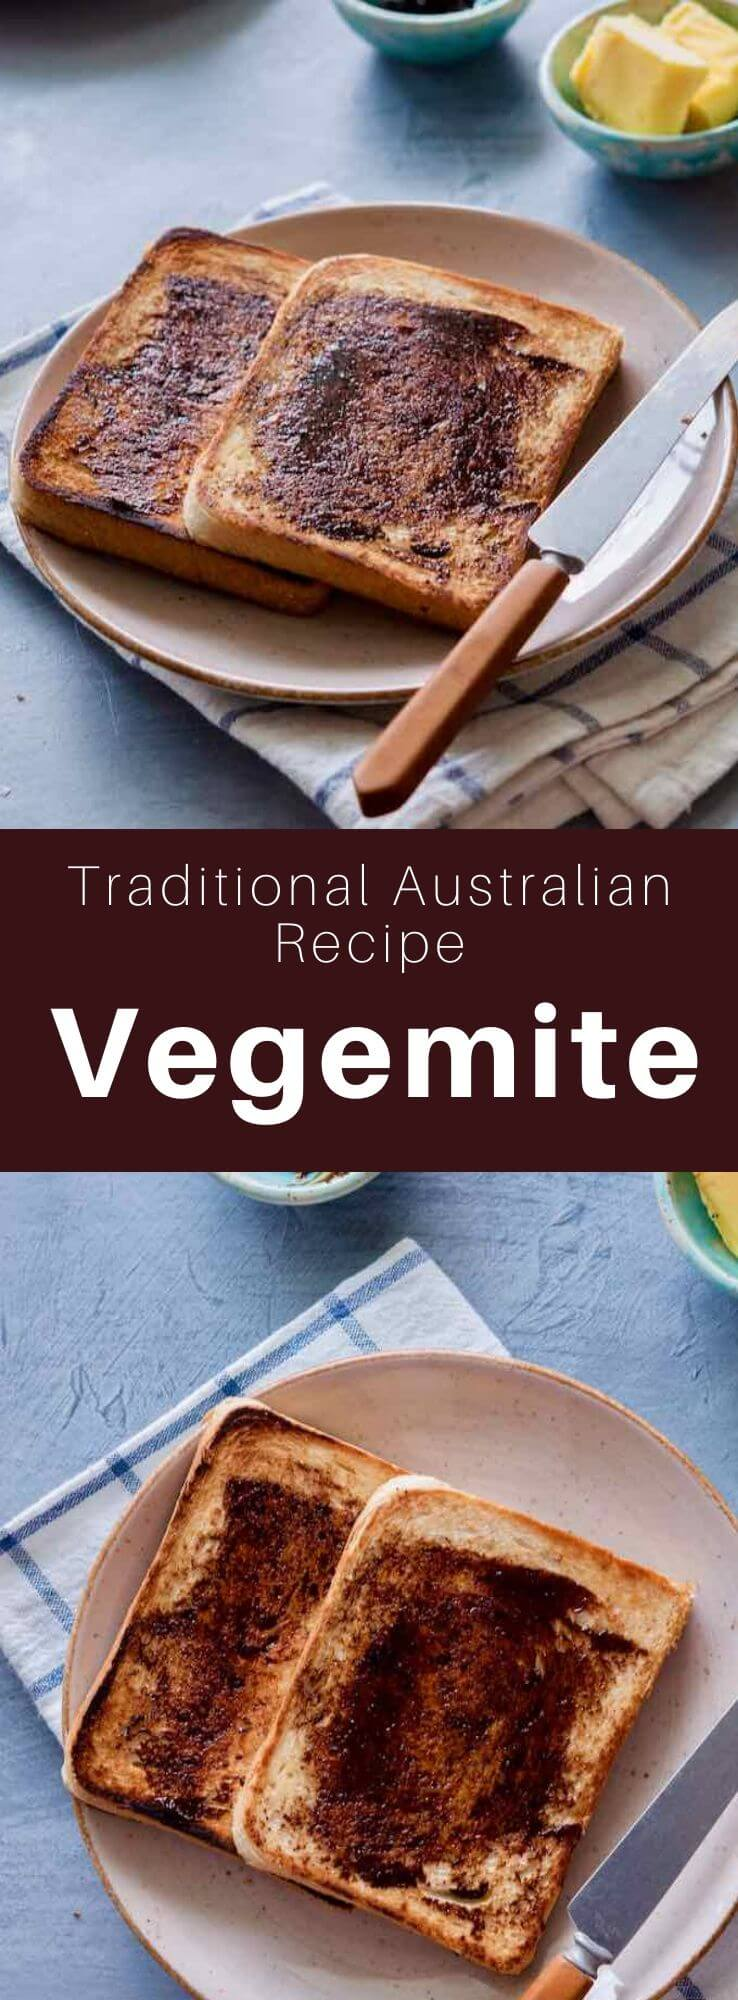 Vegemite is a dark brown and relatively salty spread made from yeast extract, mainly consumed in Australia and New Zealand. #Australia #NewZealand #WorldCuisine #196flavors